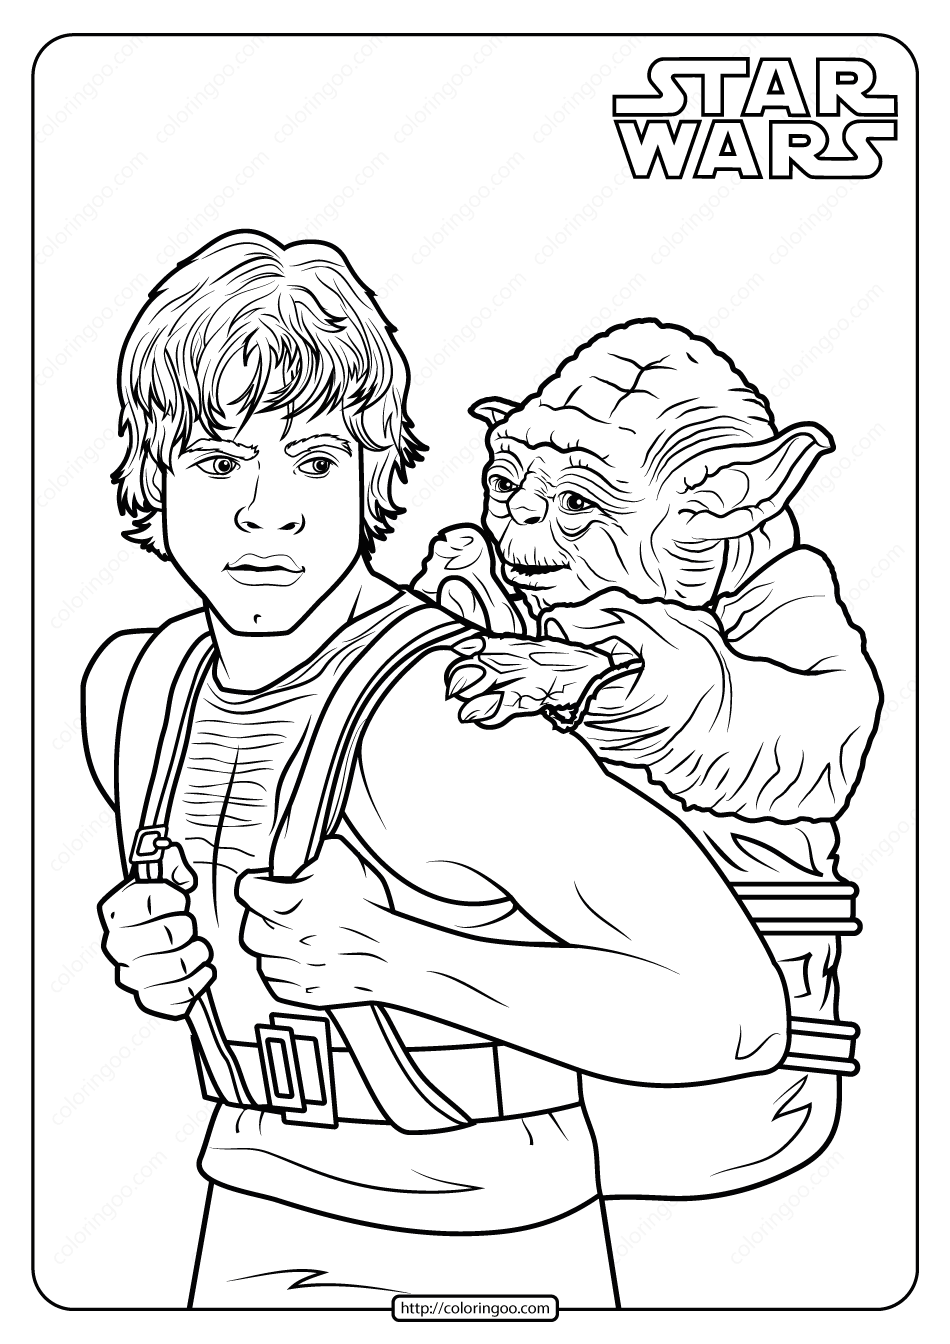 Printable Star Wars Luke and Yoda Coloring Pages